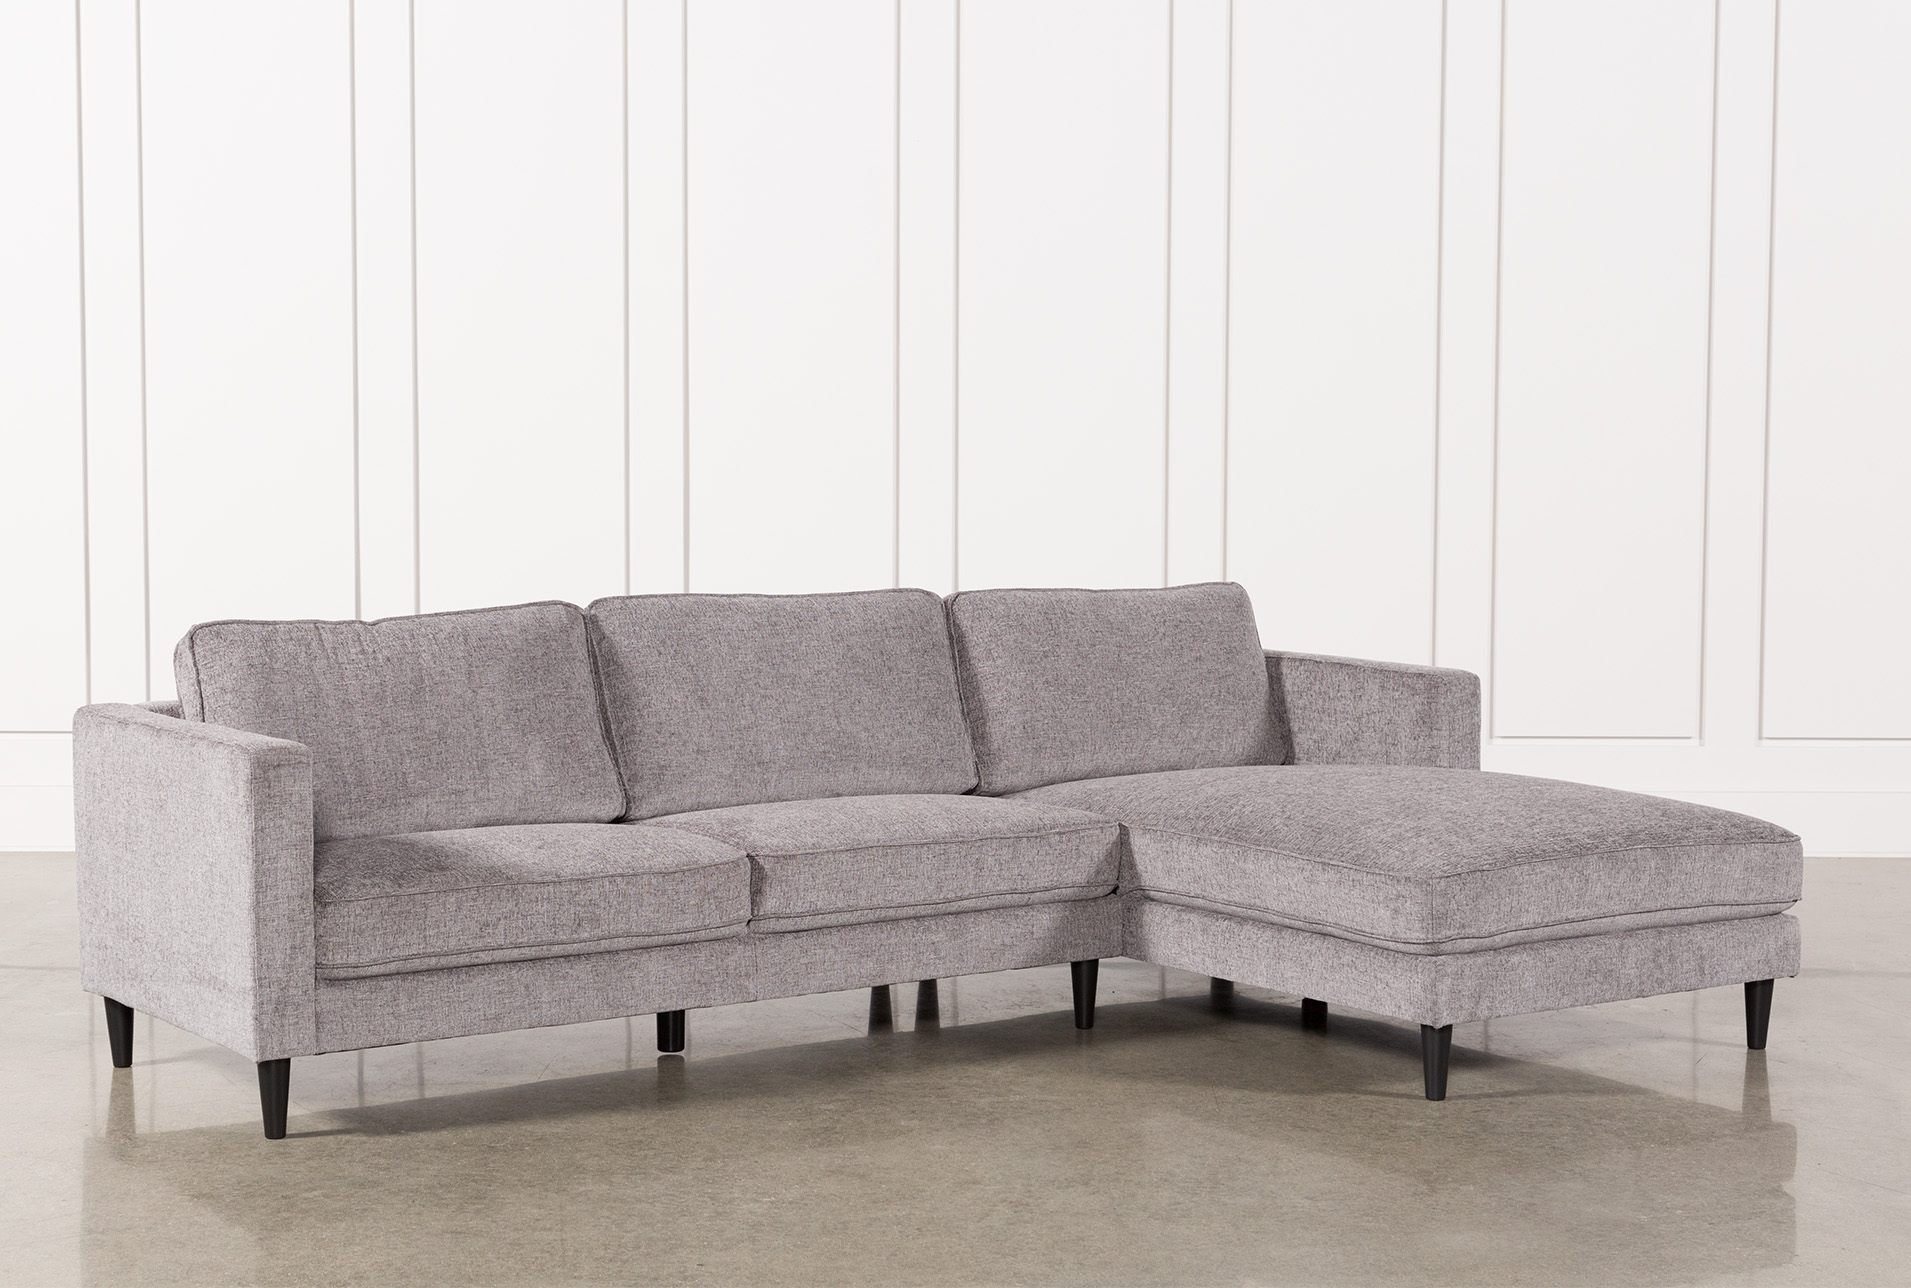 Cosmos Grey 2 Piece Sectional W/Raf Chaise   360